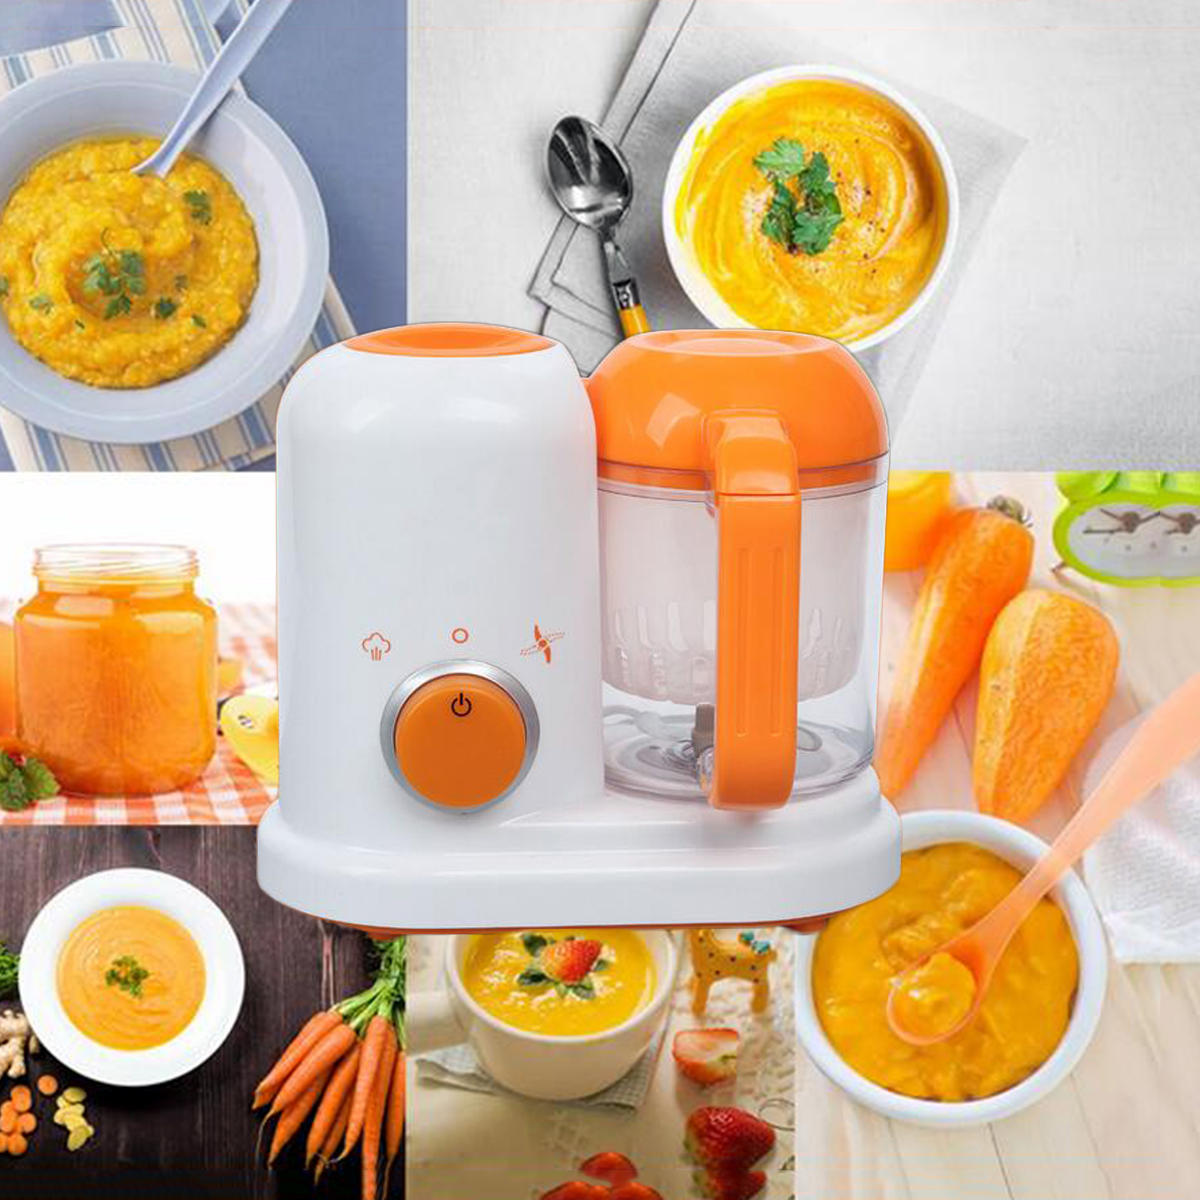 New Electric Baby Food Maker Processor Toddler Blender Safe Healthy Steam Cooker Steamer Bpa Free